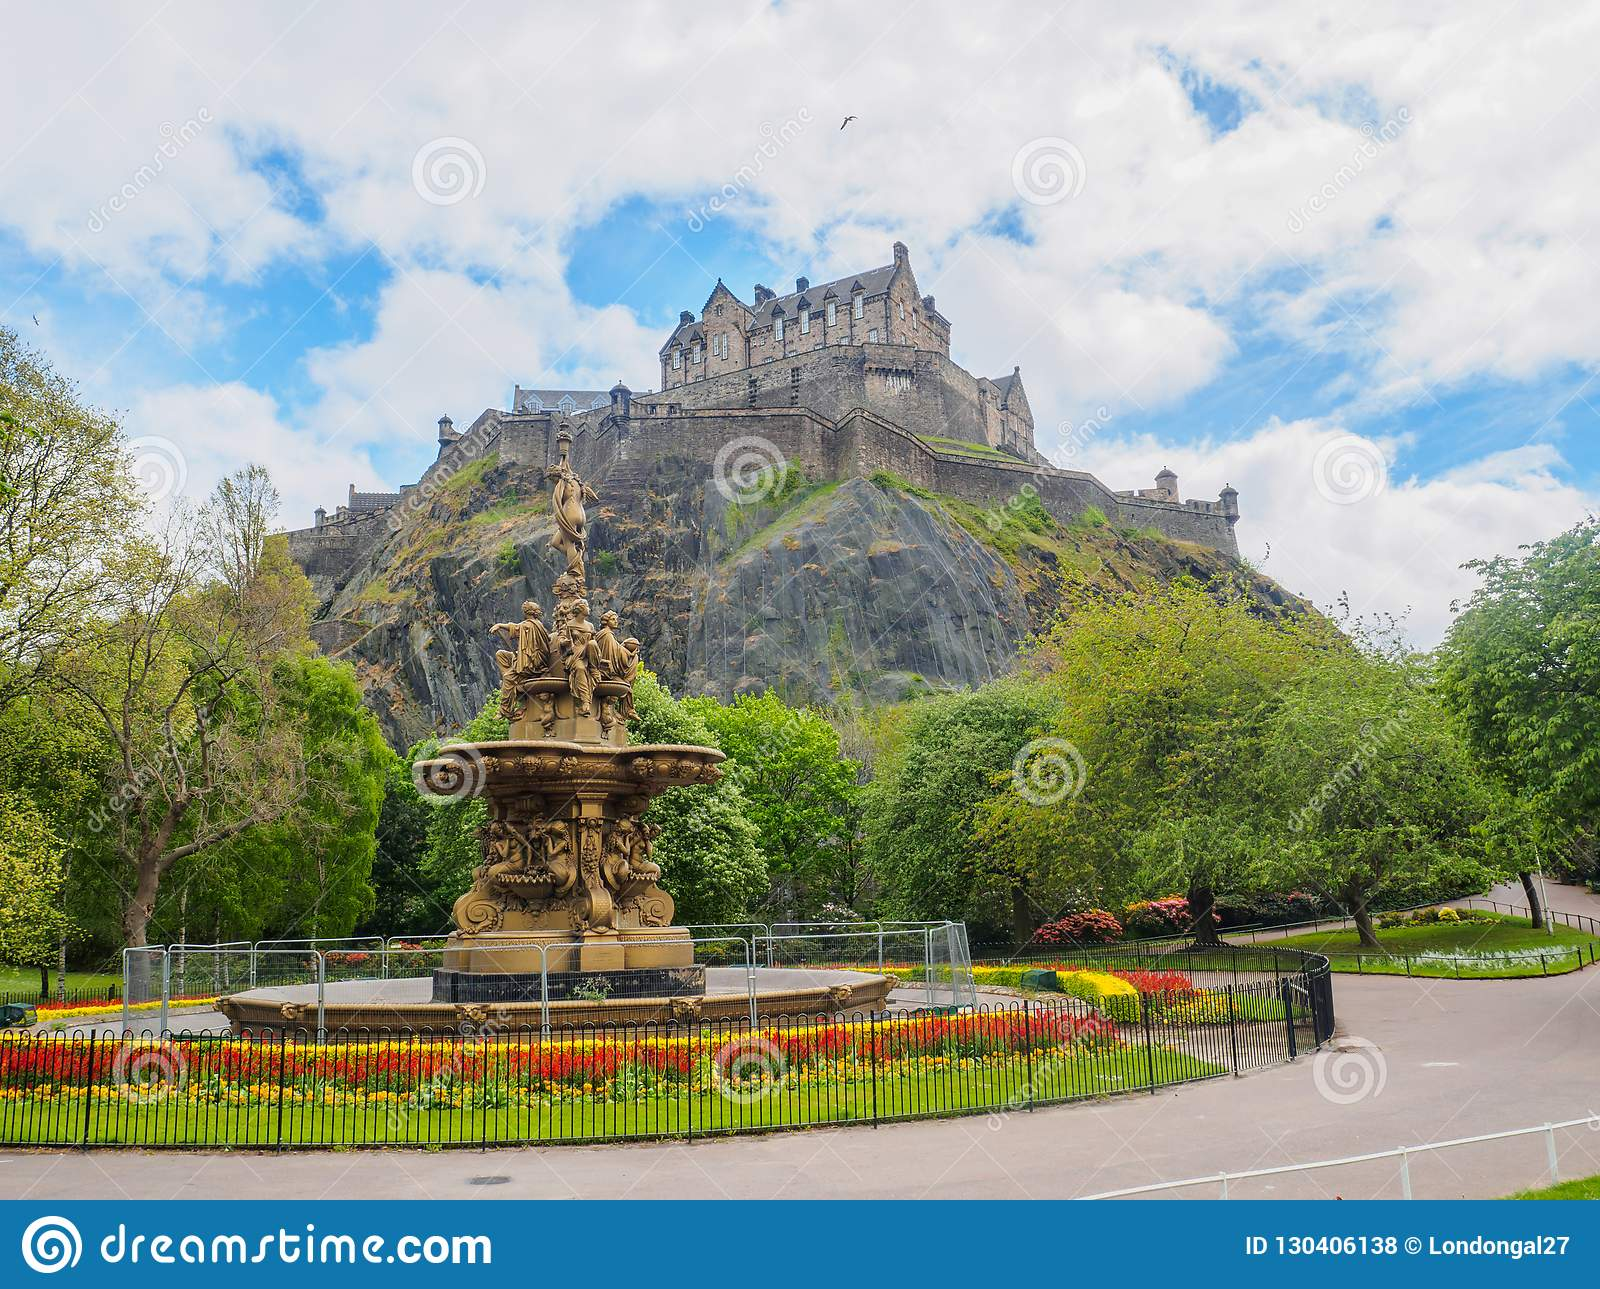 Edinburgh Castle and Ross Fountain seen from the Princes Street Gardens on a bright sunny day.